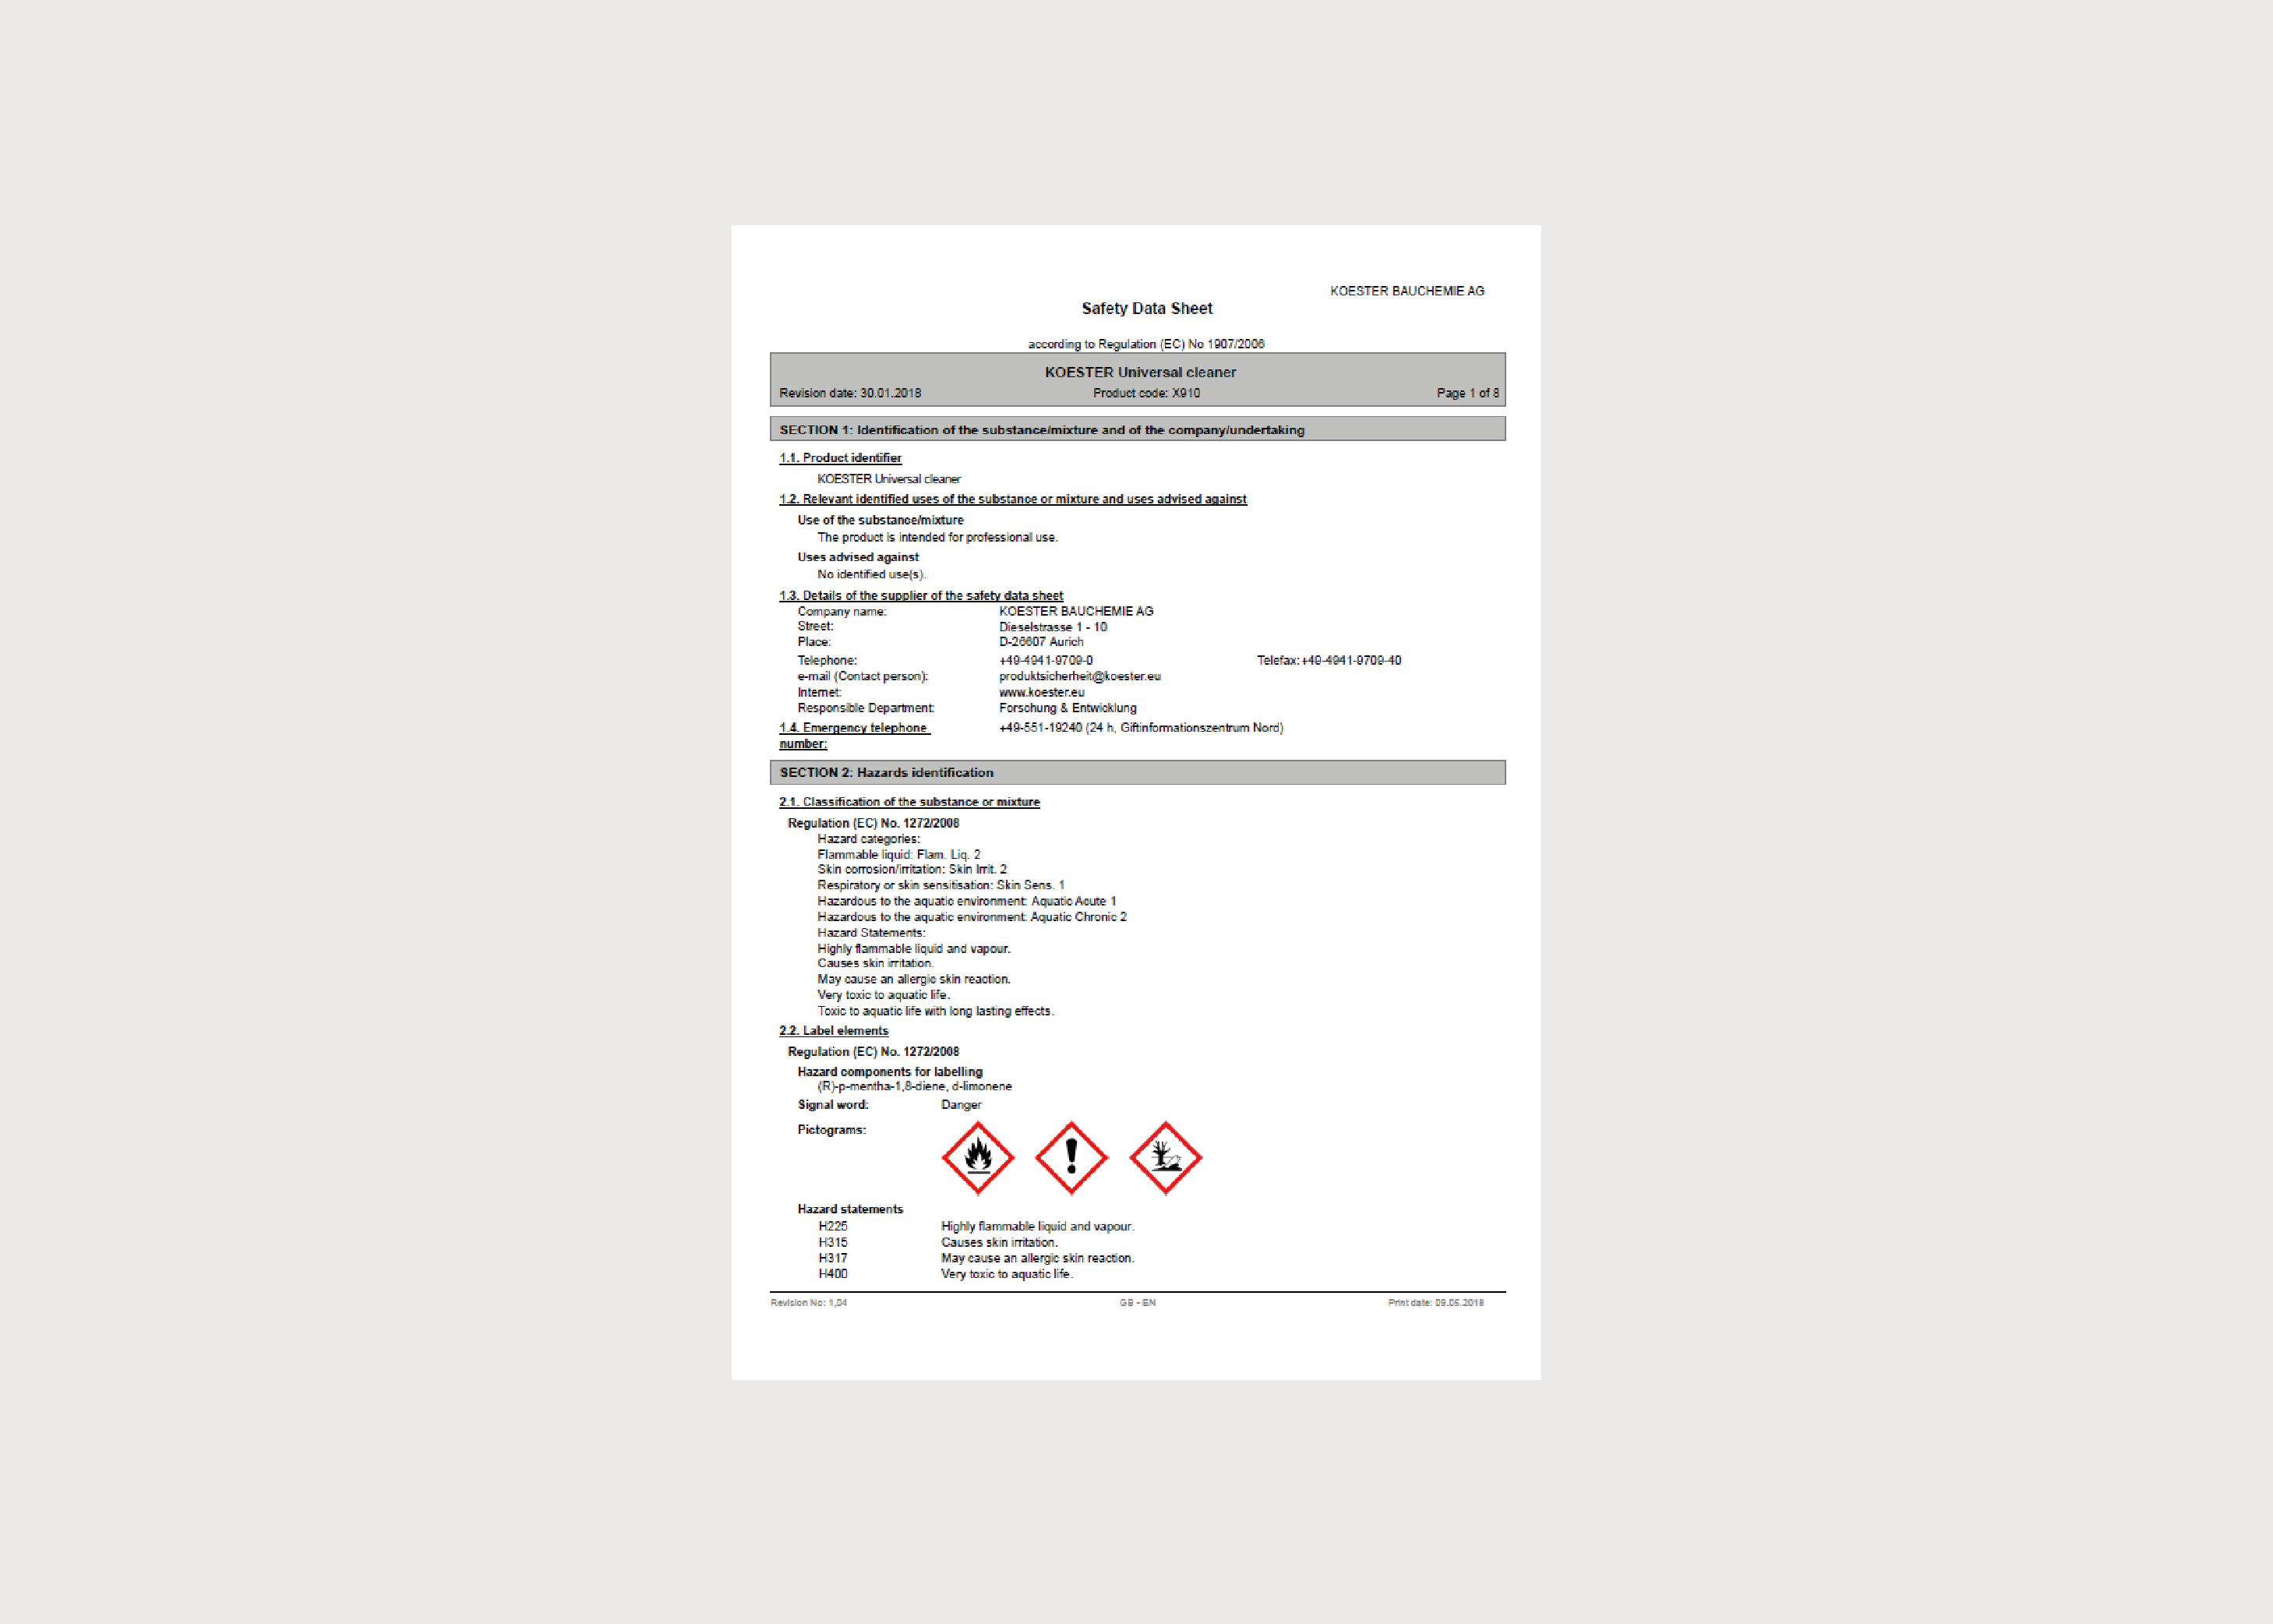 Koster Accessory MSDS